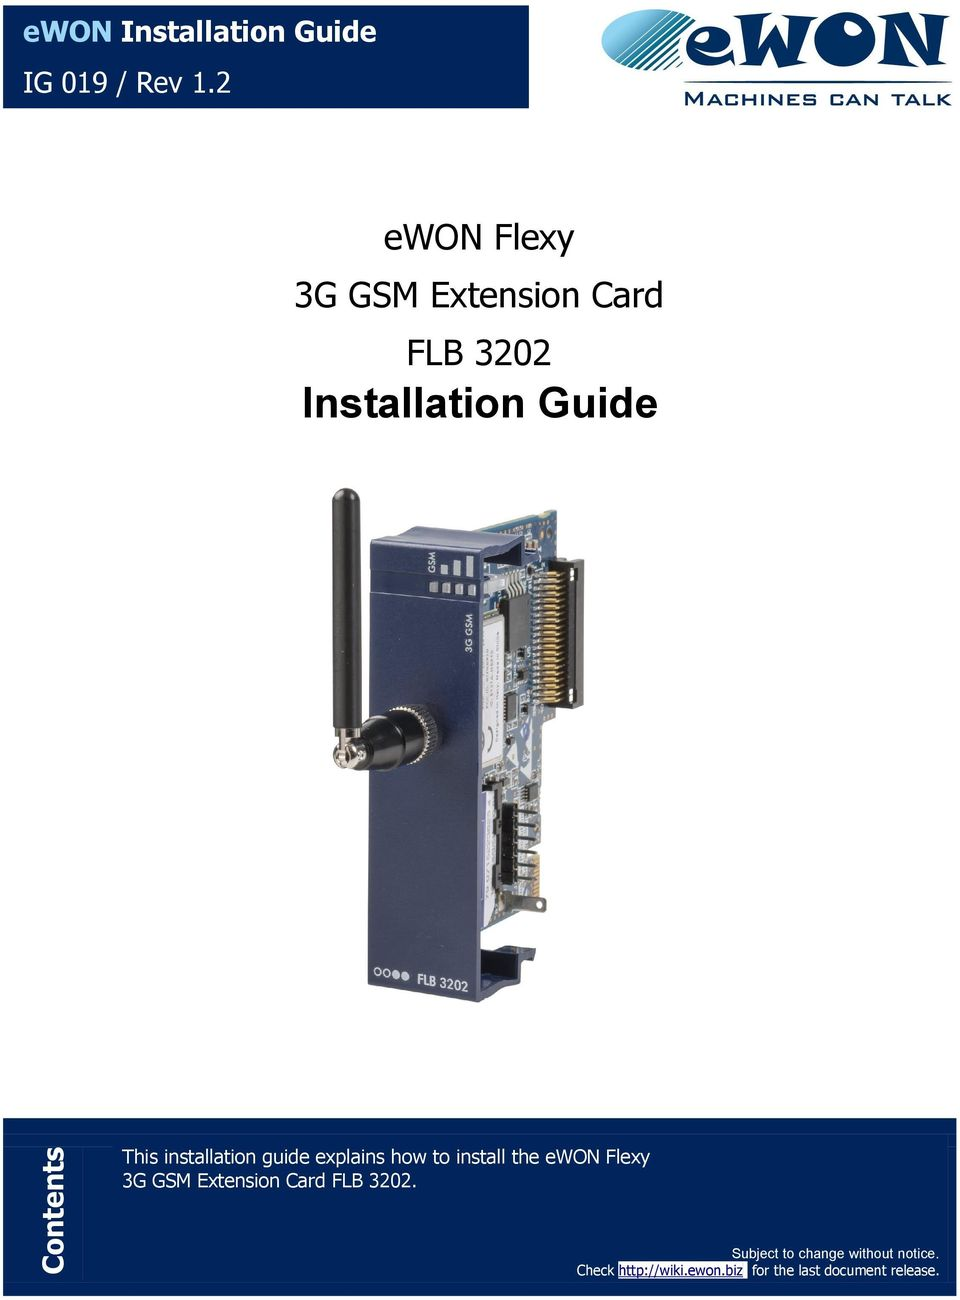 explains how to install the ewon Flexy 3G GSM Extension Card FLB 3202.